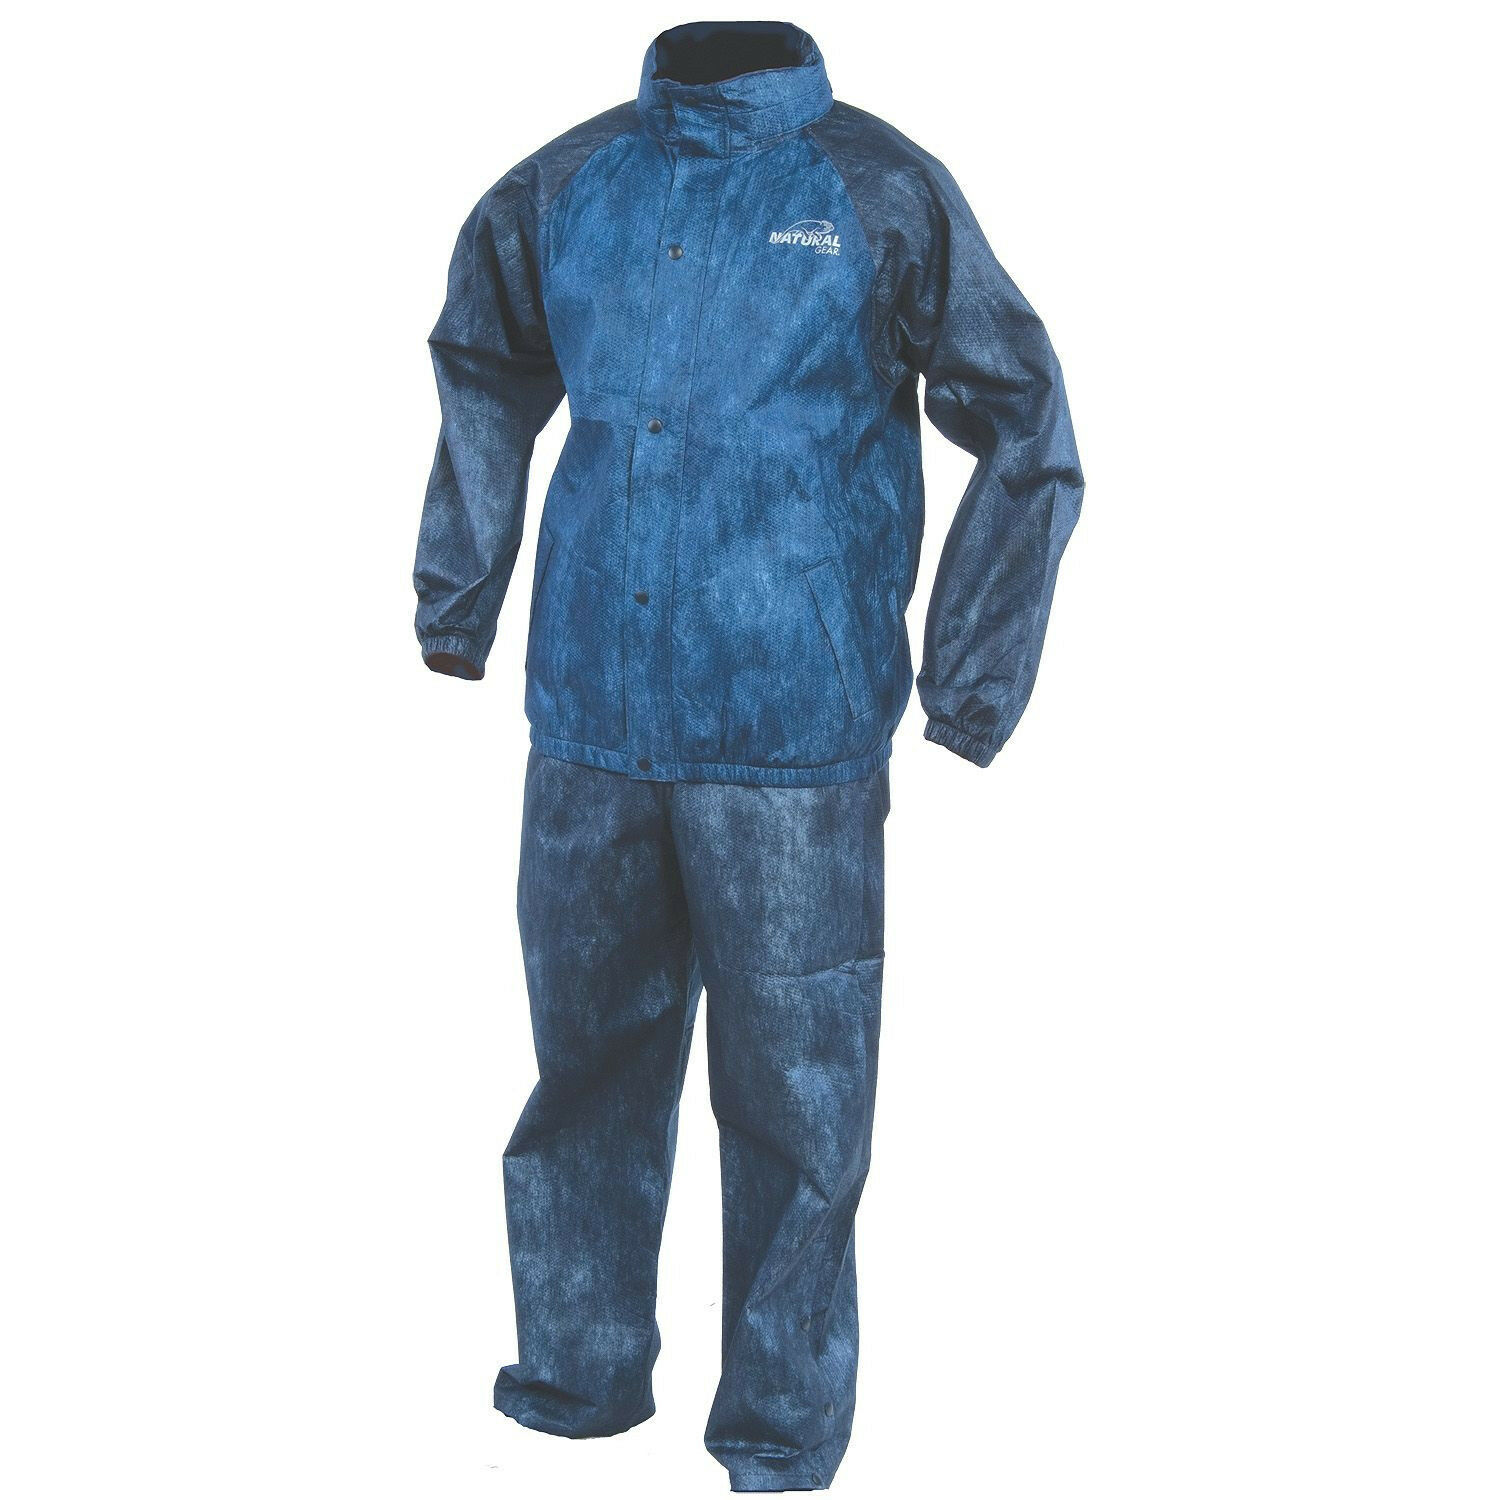 Rain Suit Camping Hunting Fishing Hiking Sports Travel  Cycling  order online